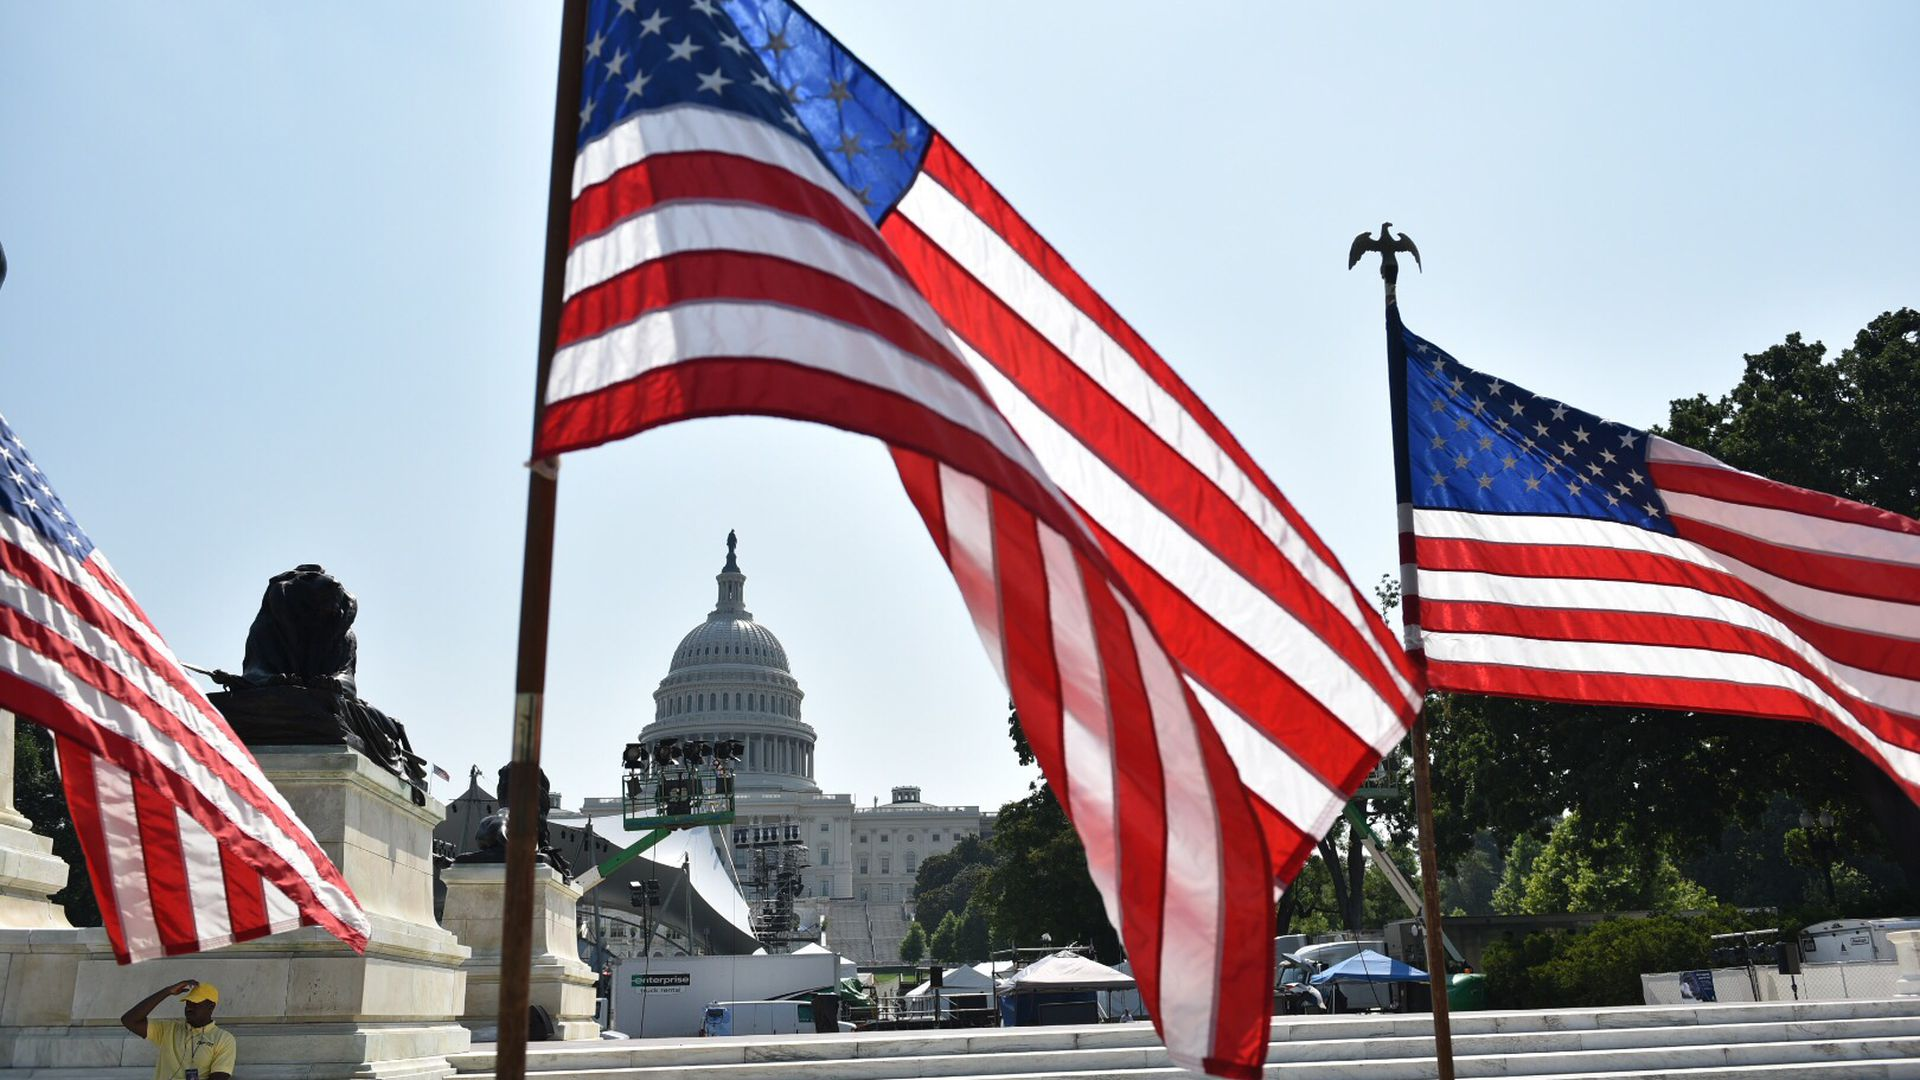 U.S. flags fly in front of the Capitol building.